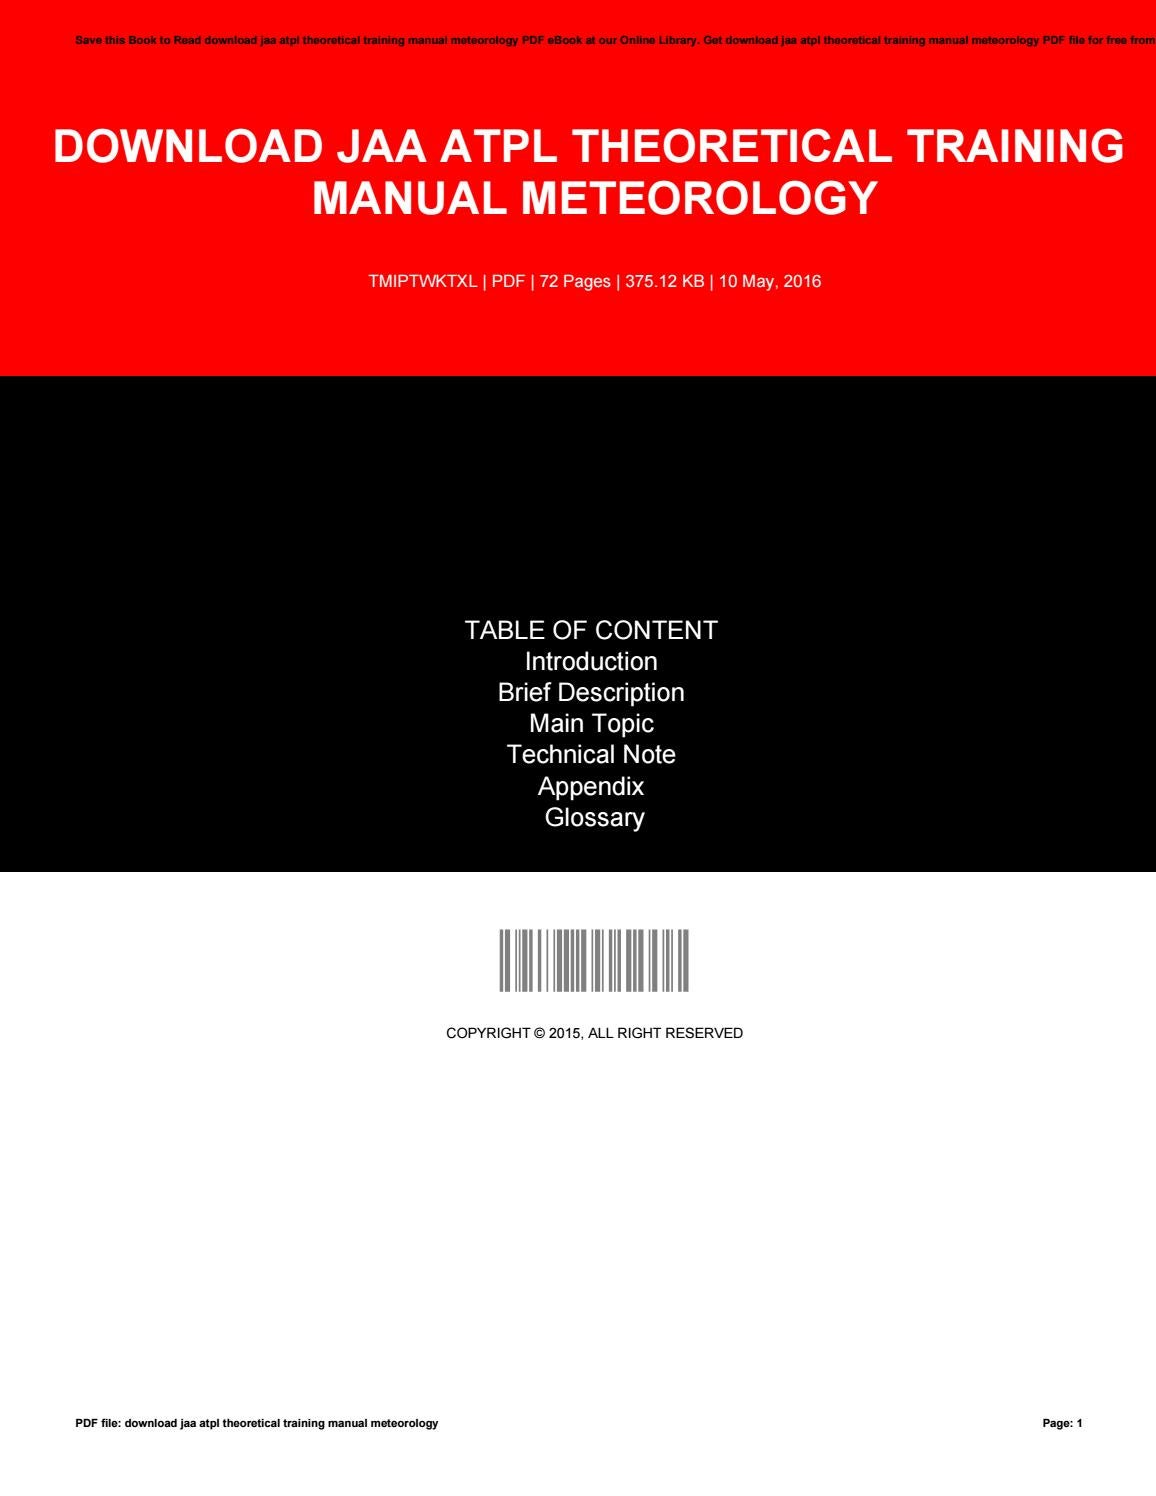 Download jaa atpl theoretical training manual meteorology by JimmyLove2685  - issuu